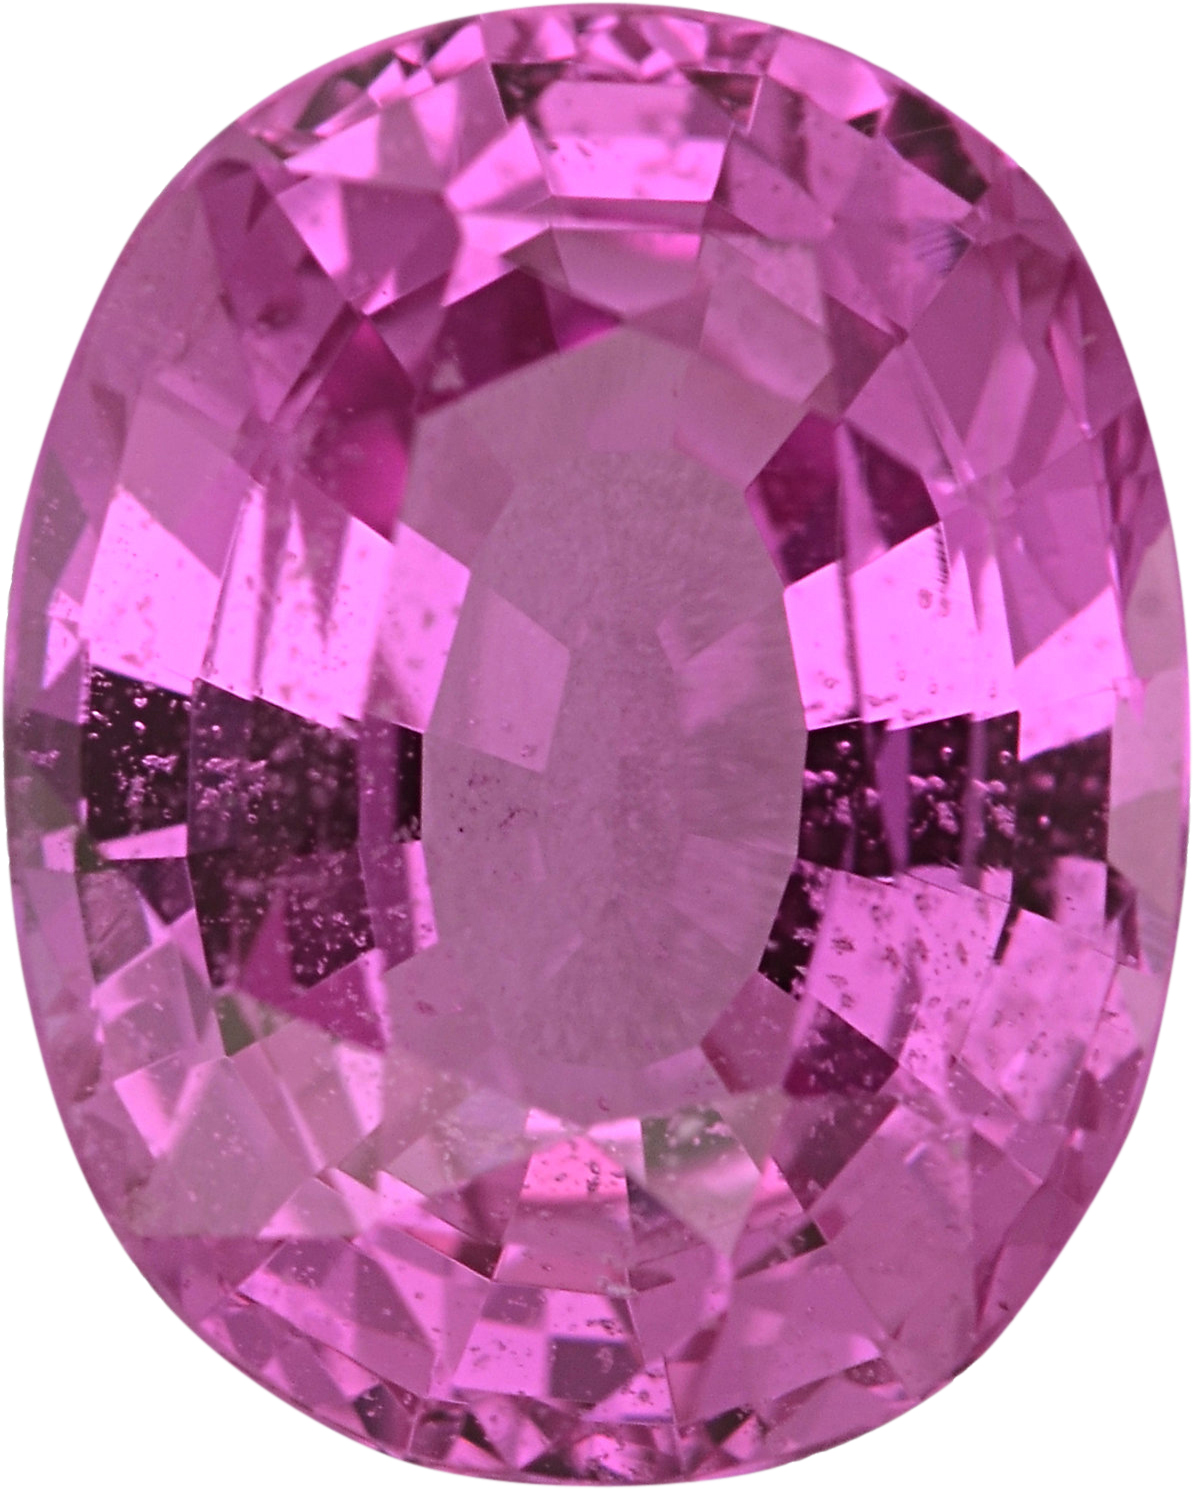 Attractive Sapphire Loose Gem in Oval Cut, Light Purple Pink, 8.35 x 6.65  mm, 2.03 Carats